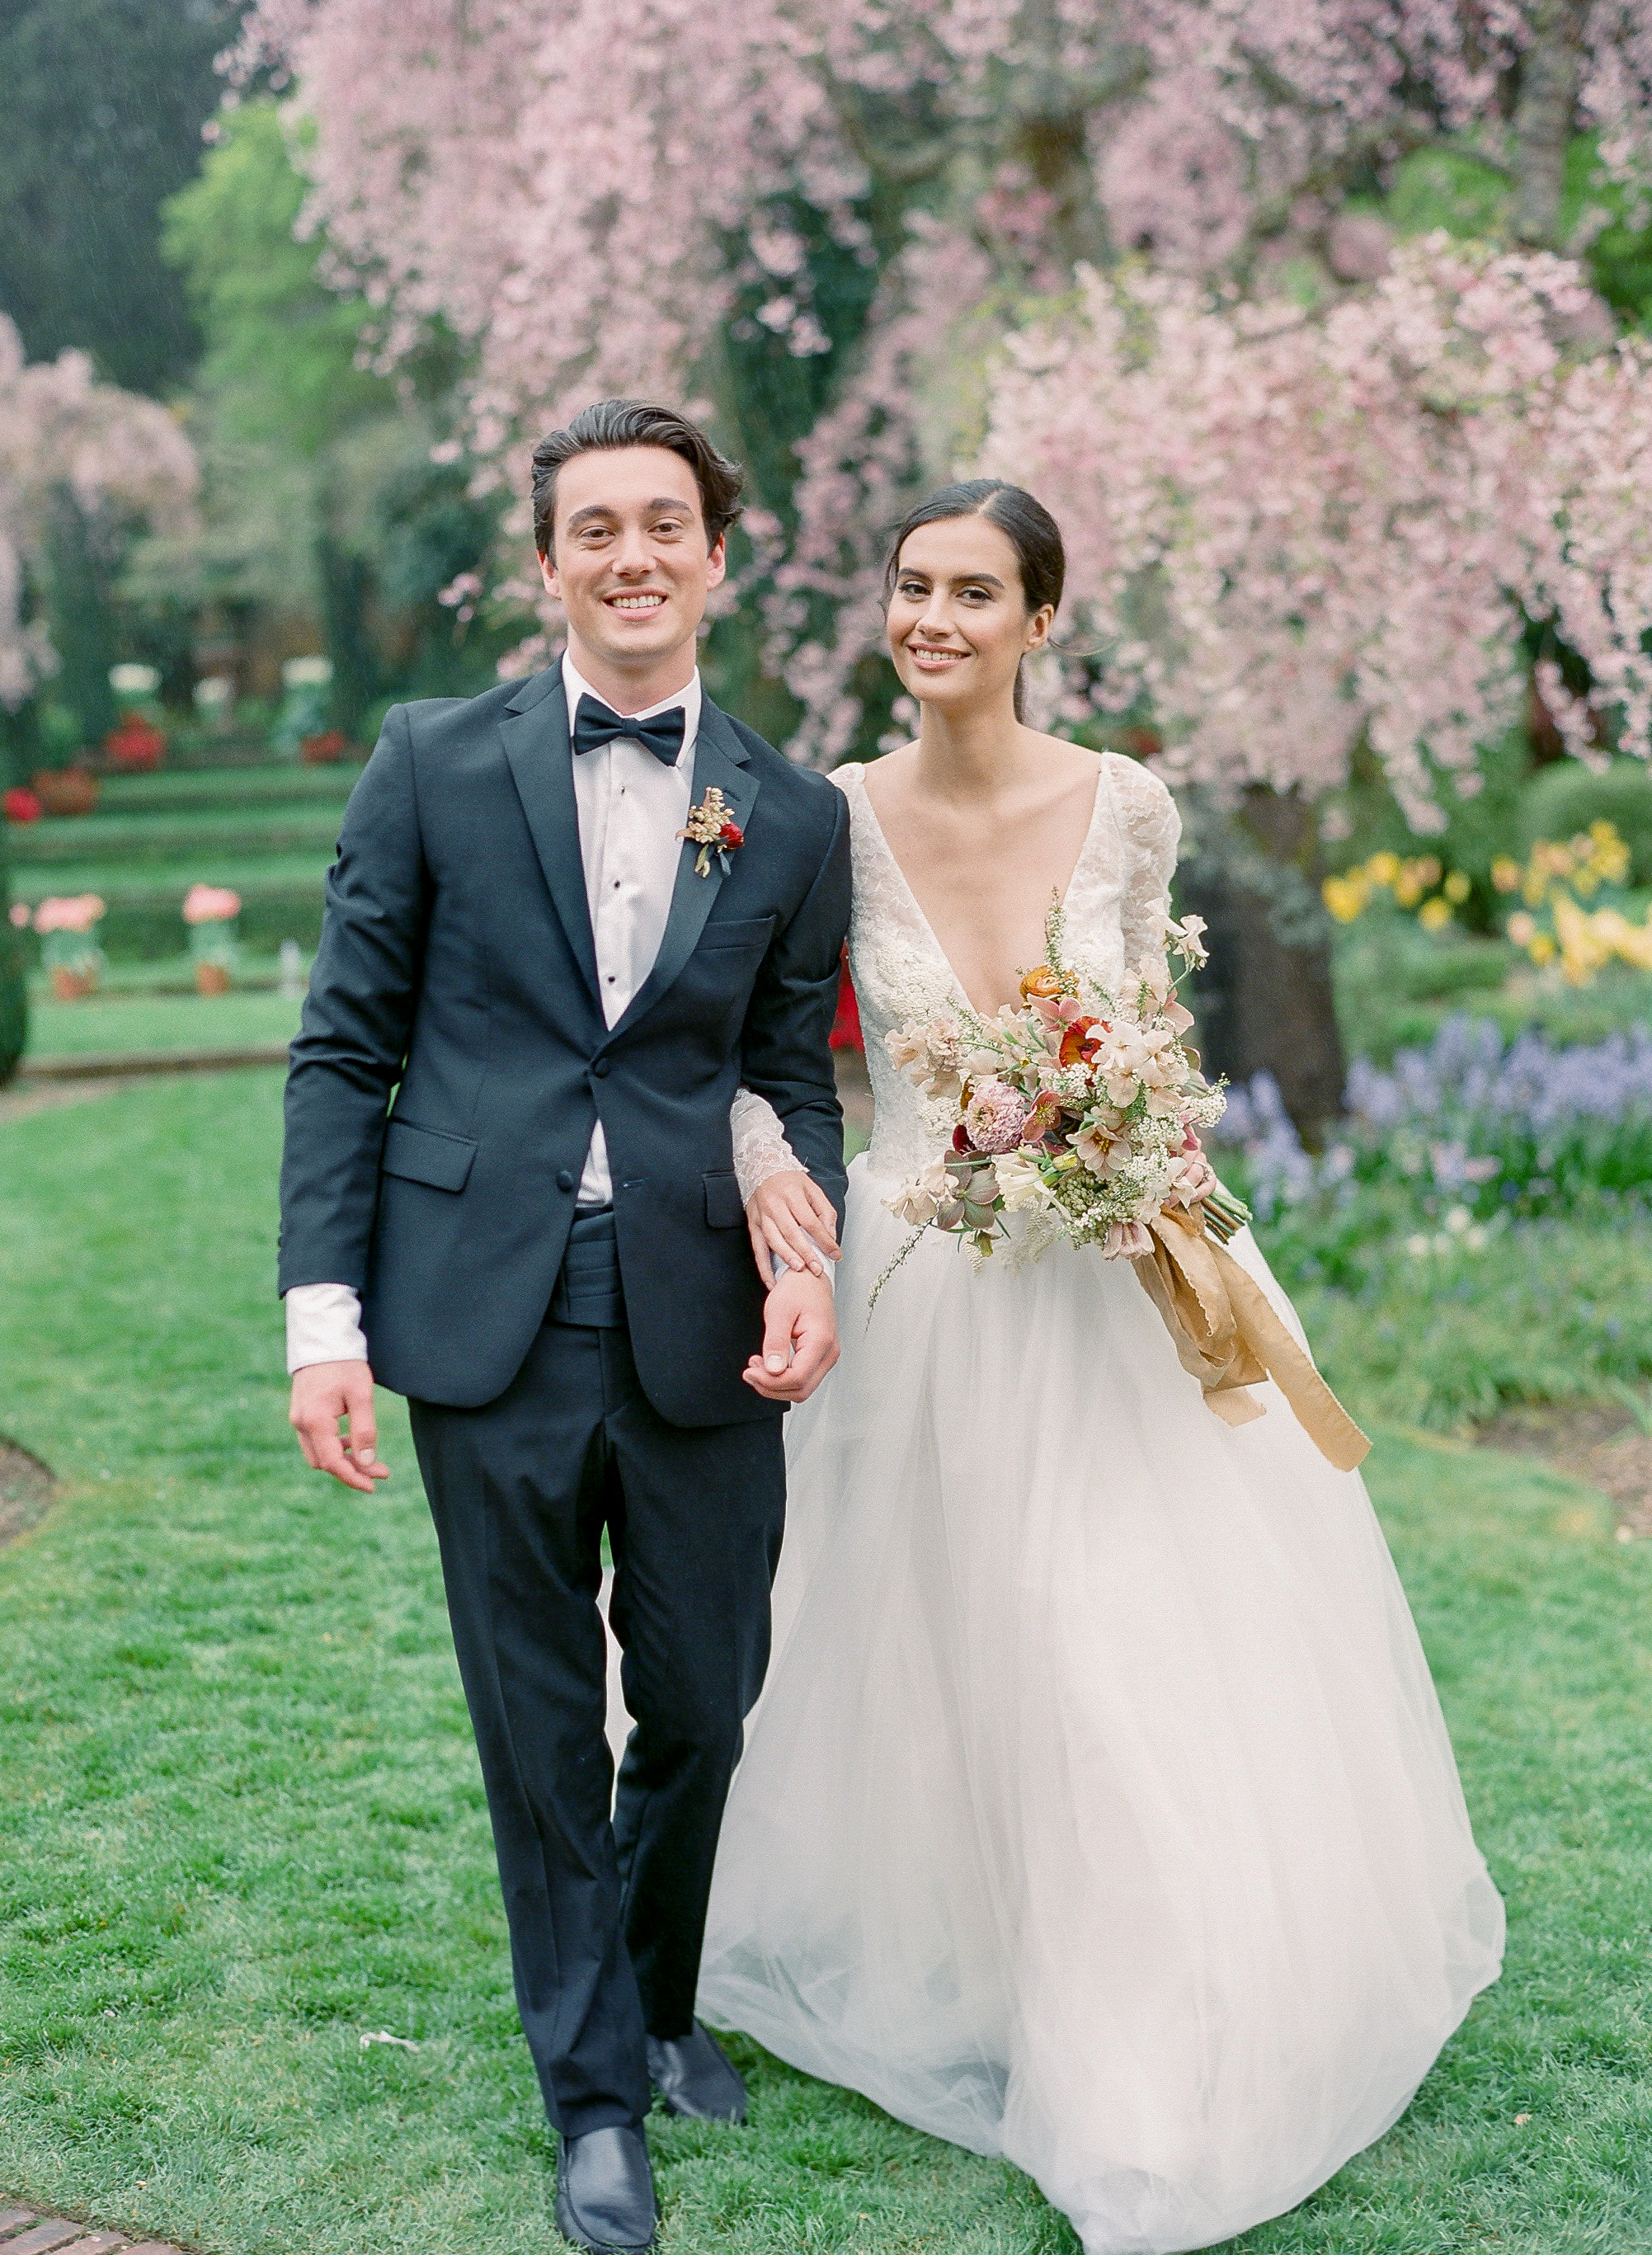 Filoli | Filoli Garden | Wedding | Amanda Crean Photography | Bustle Events | Amanda Vidmar Designs